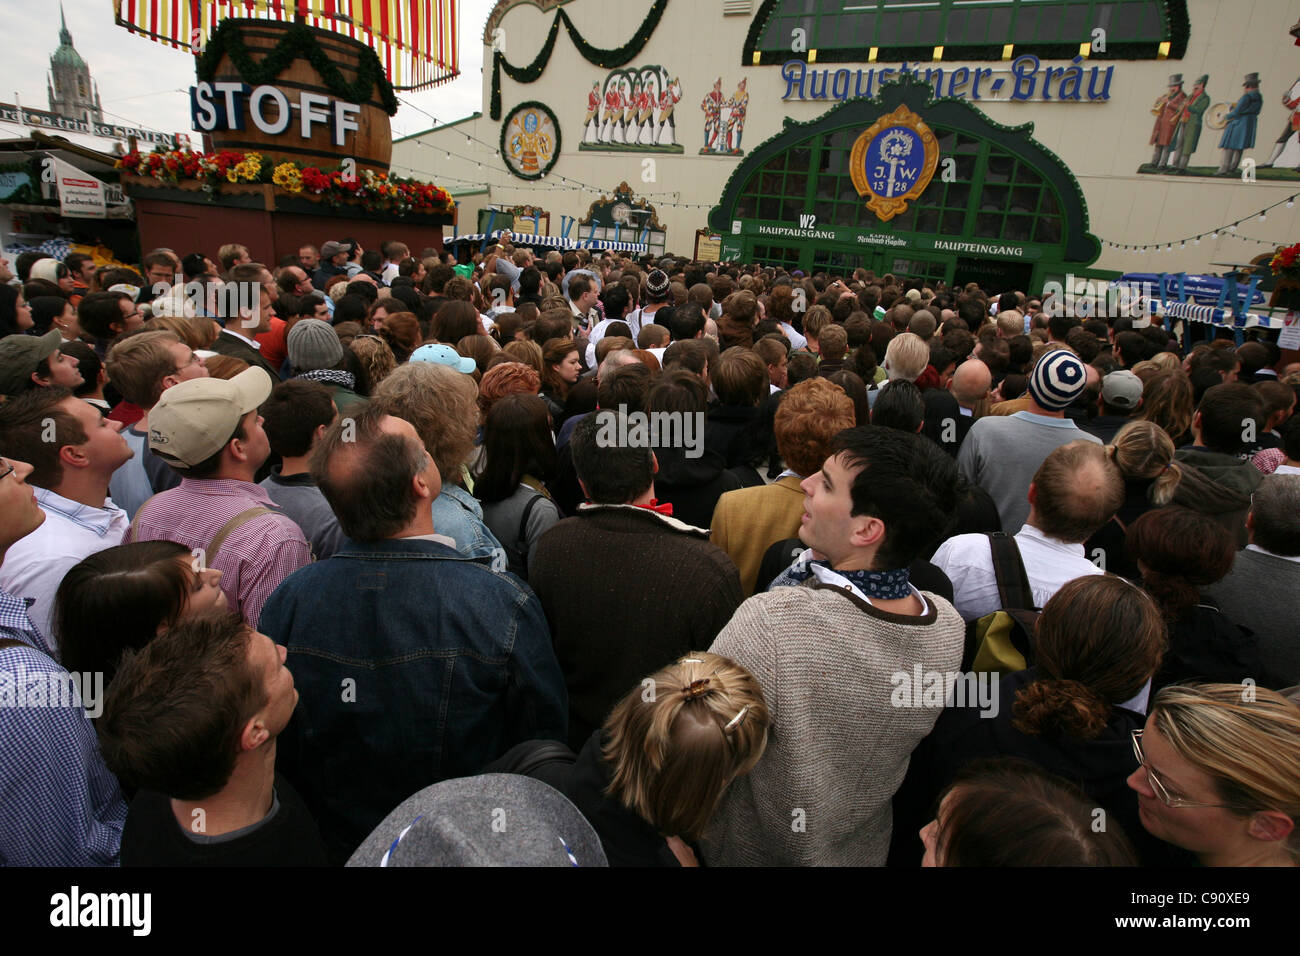 Huge crowd in front of the Augustiner Festhalle on the first day of the Oktoberfest Beer Festival in Munich, Germany. Stock Photo